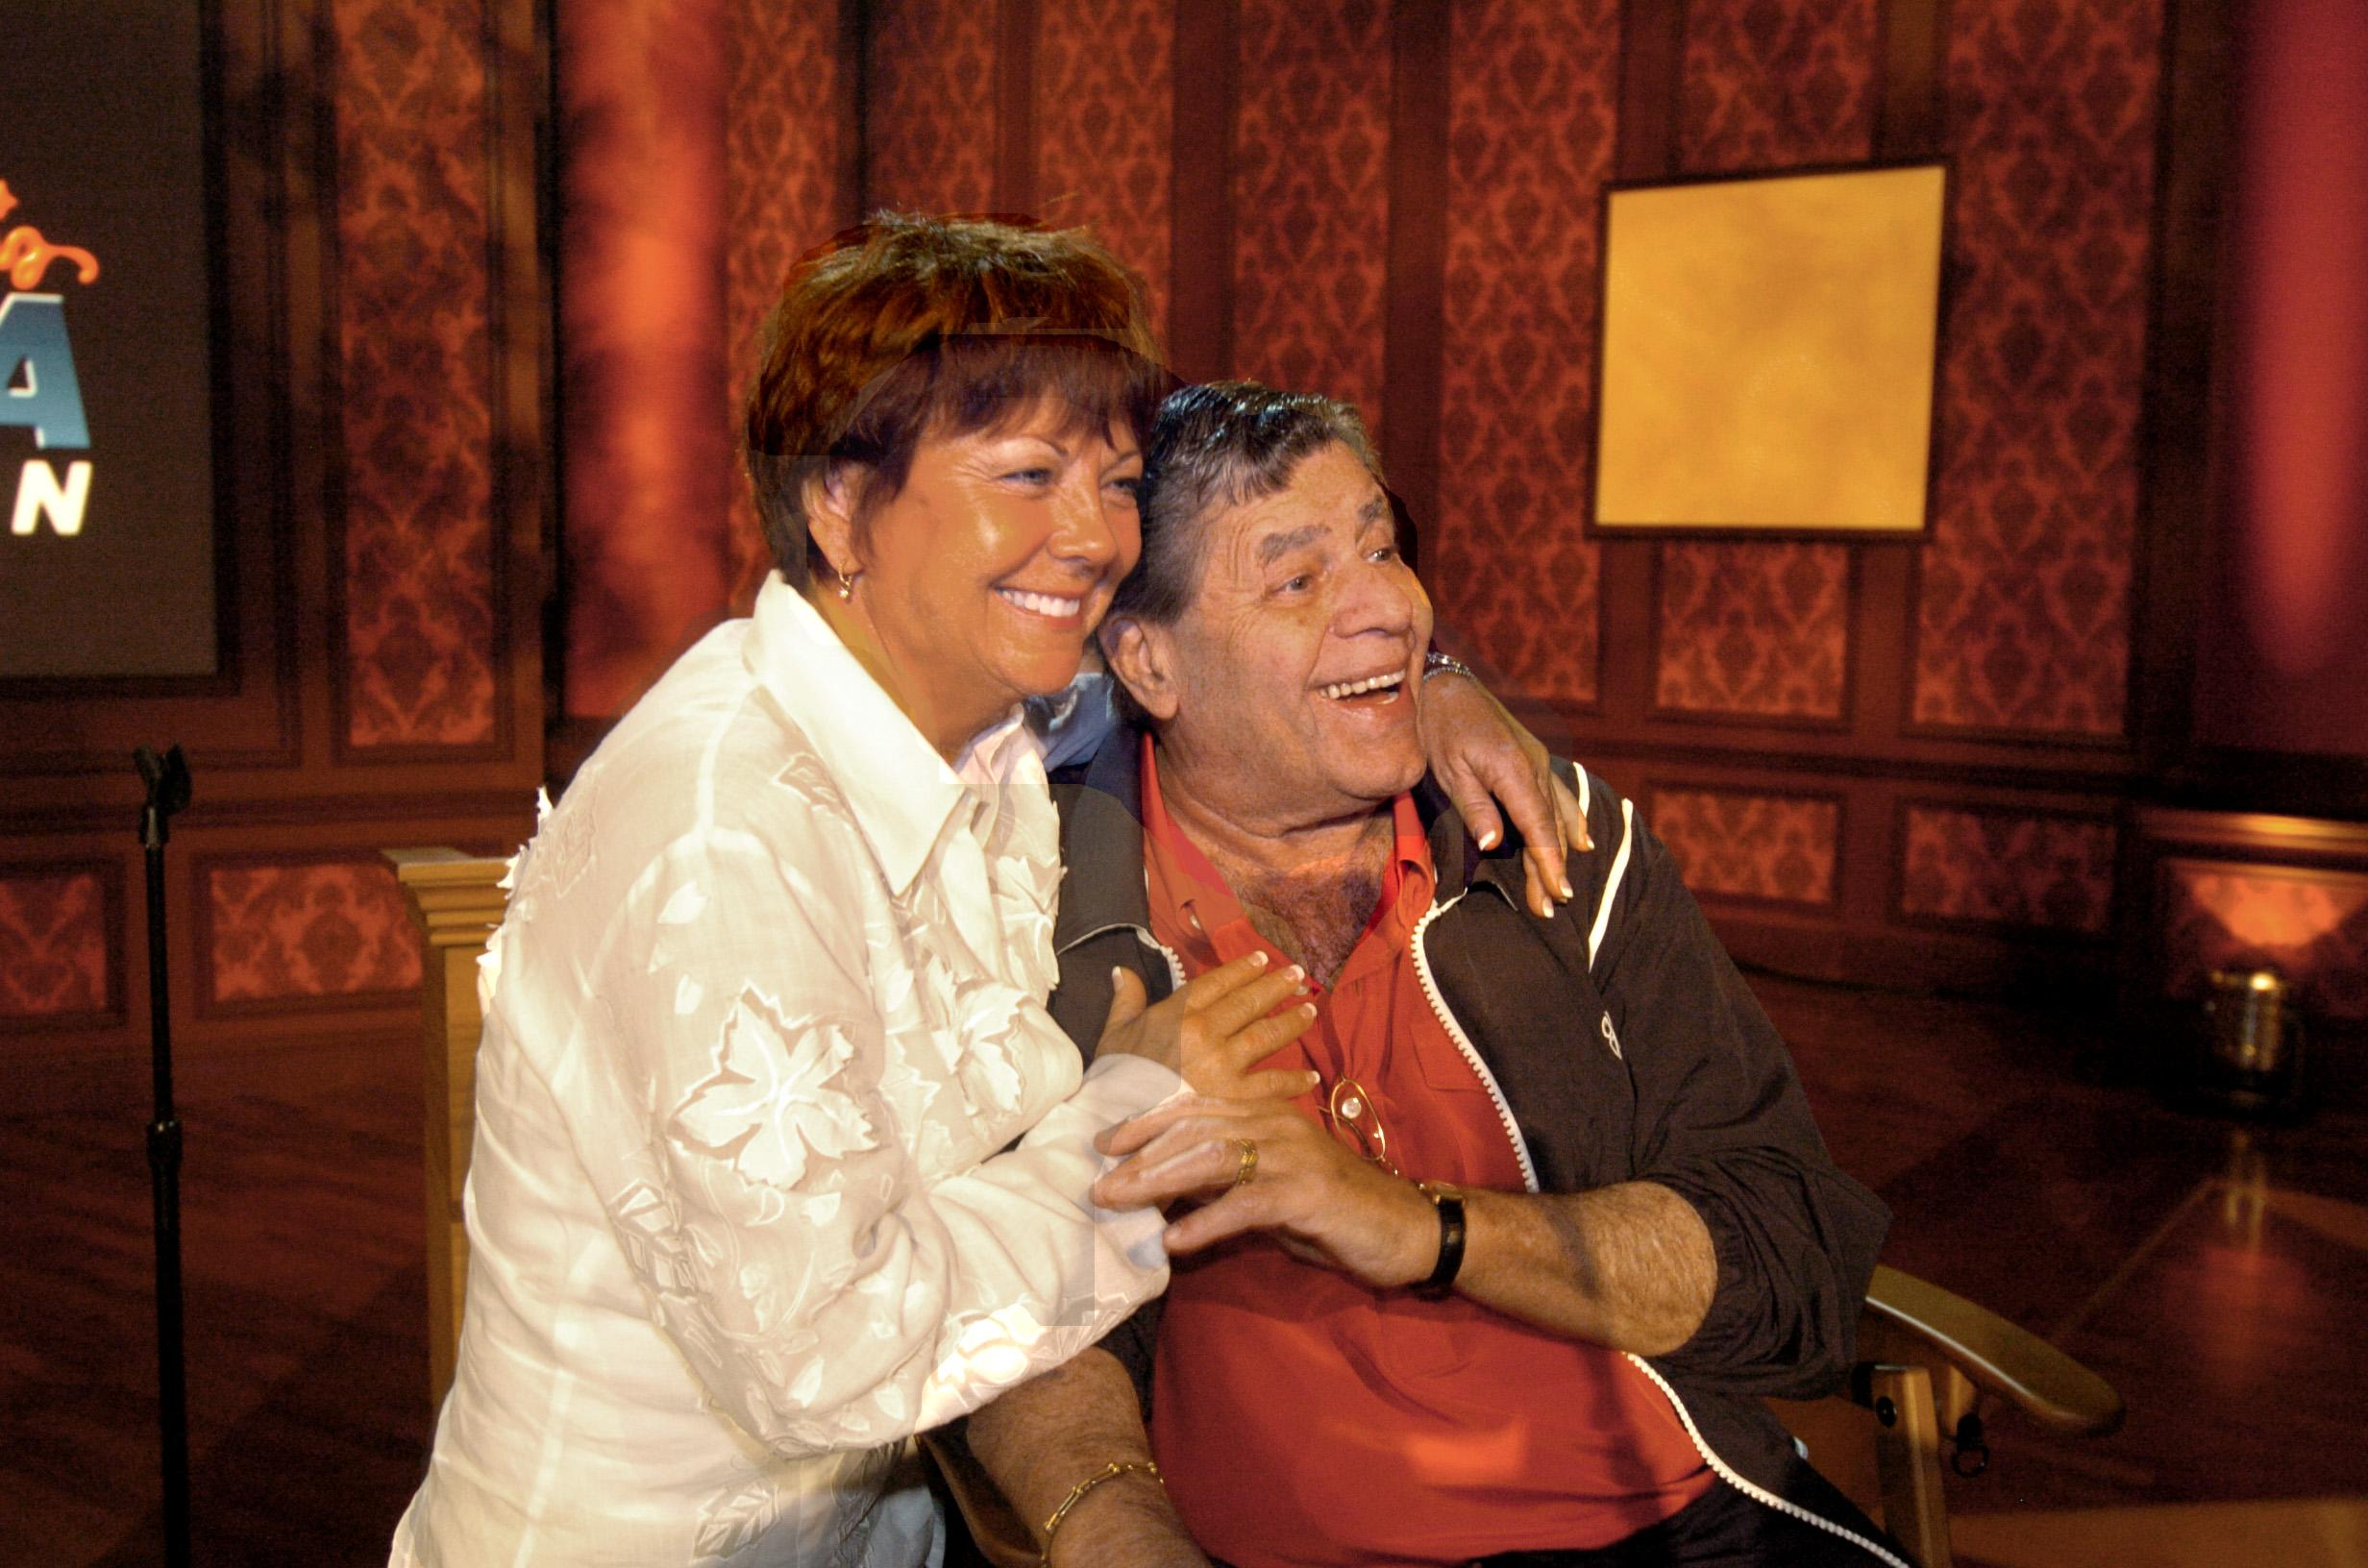 Entertainment icon Jerry Lewis   with his wife Sam (Sandy) during a press conference for his MDA Telethon at the South Coast Hotel and Casino on August 31, 2006 in Las Vegas, Nevada. Photo by Glenn Pinkerton/Las Vegas News Bureau